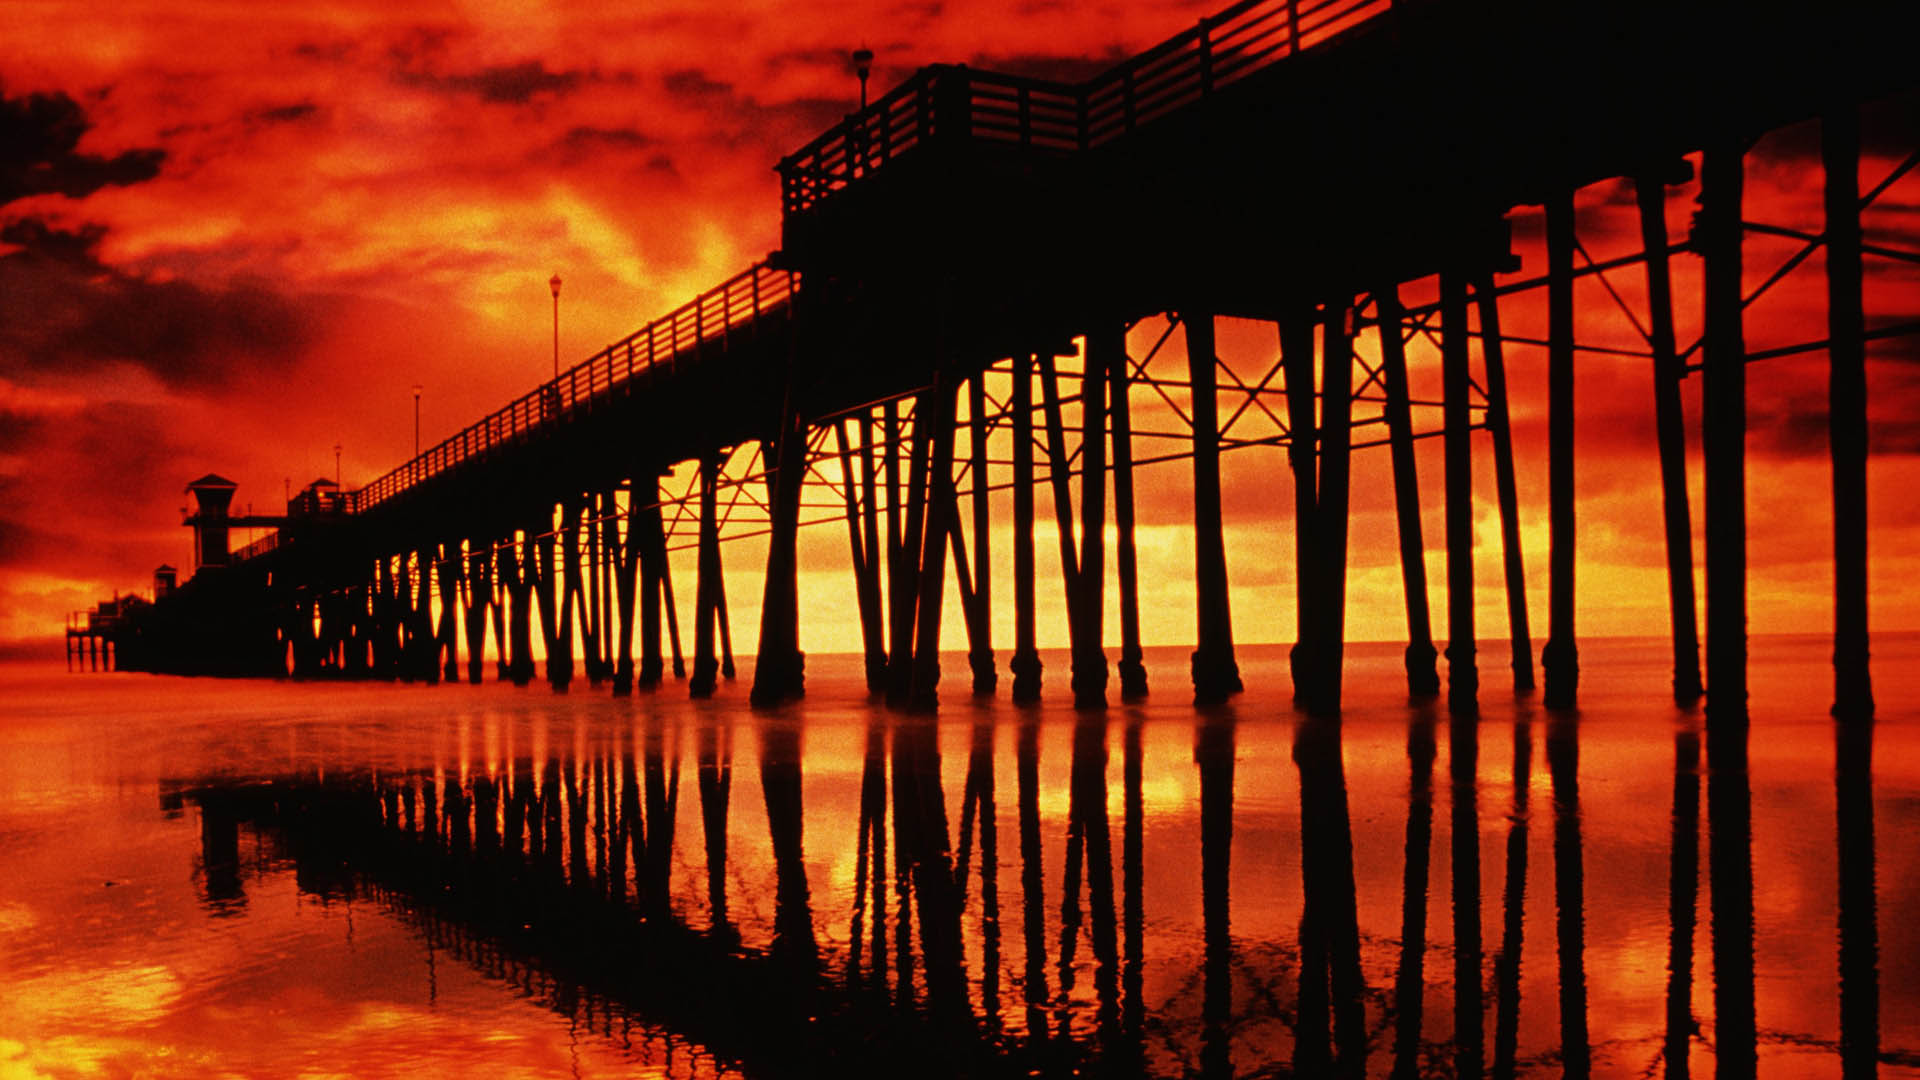 fiery-sky-over-pier-in-san-diego-1920×1080-wallpaper-wp3405500